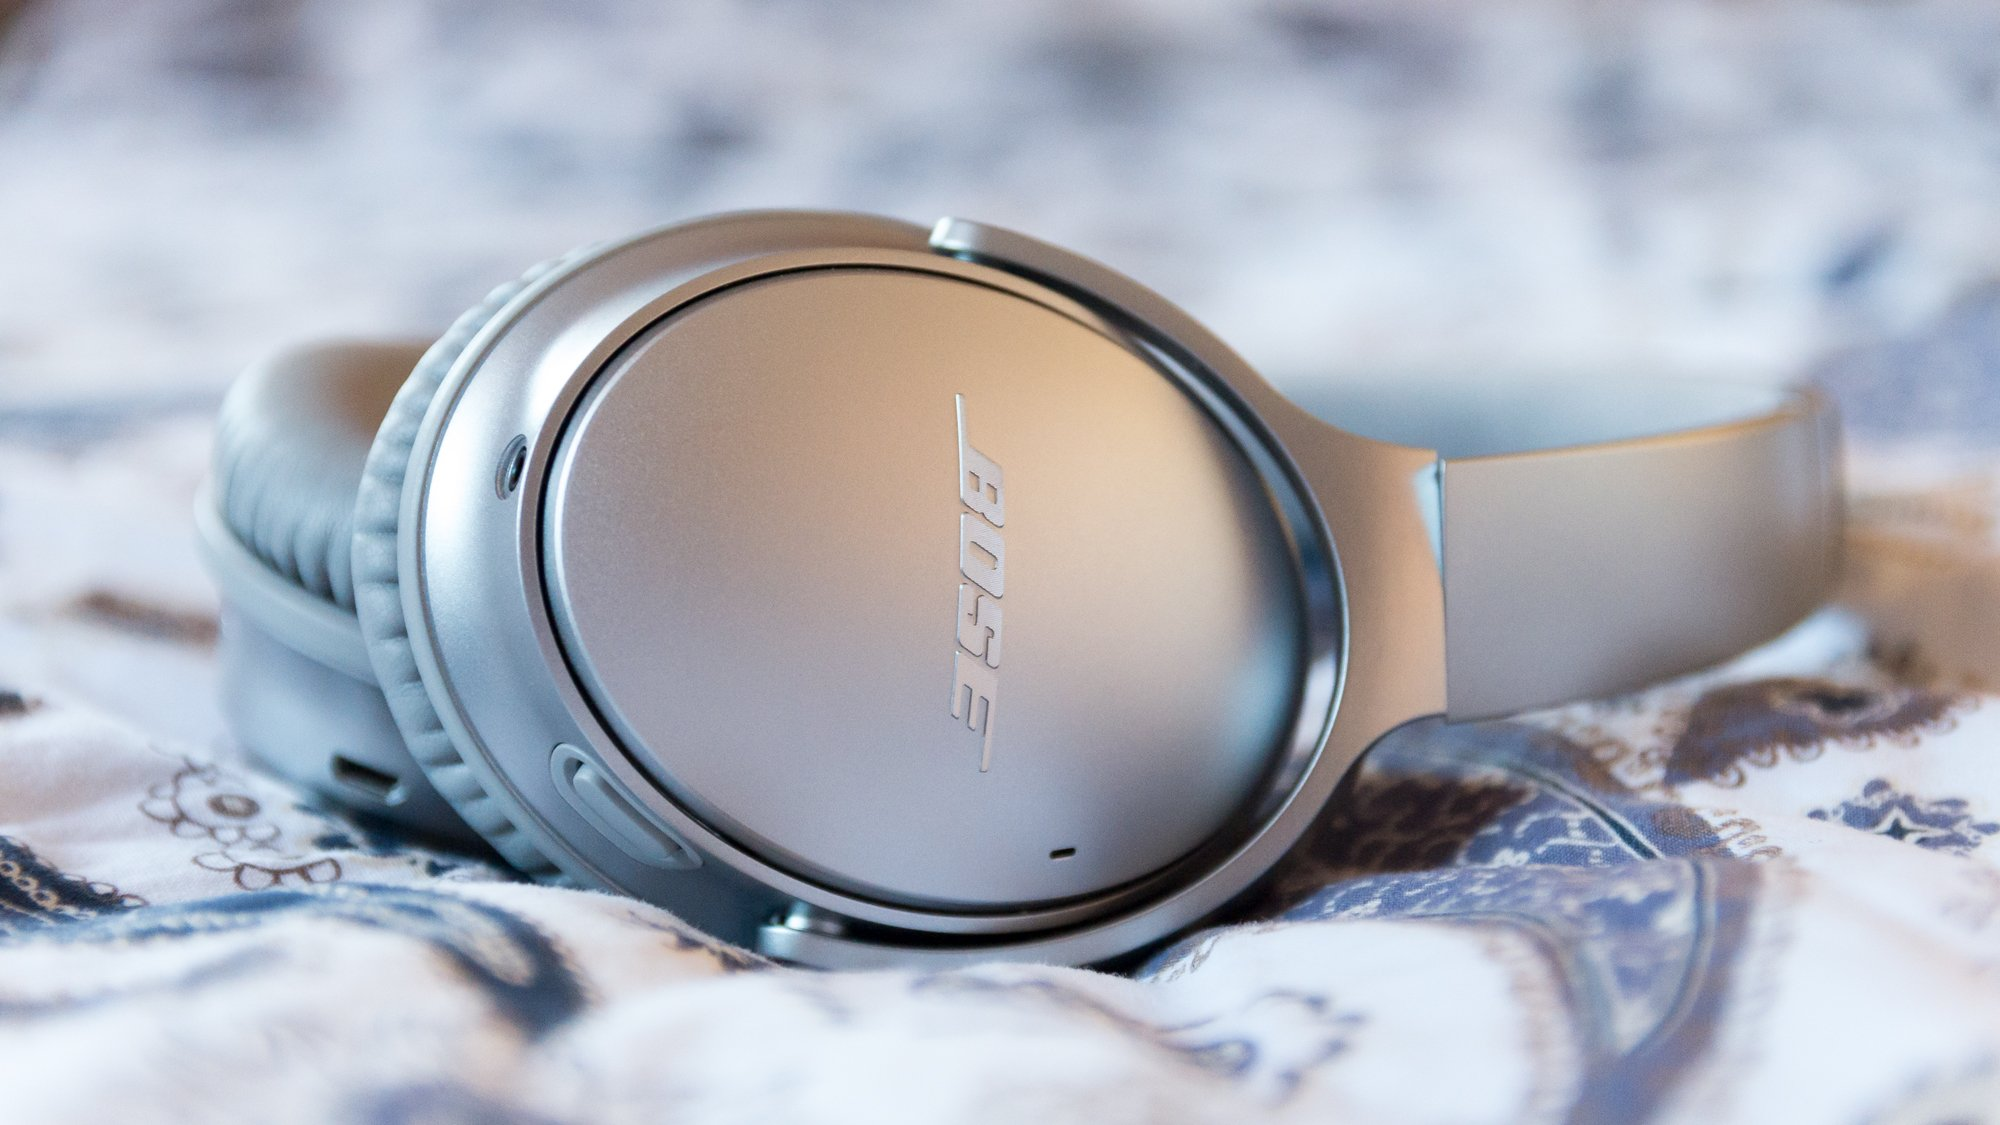 Bose QuietComfort 35 II hero